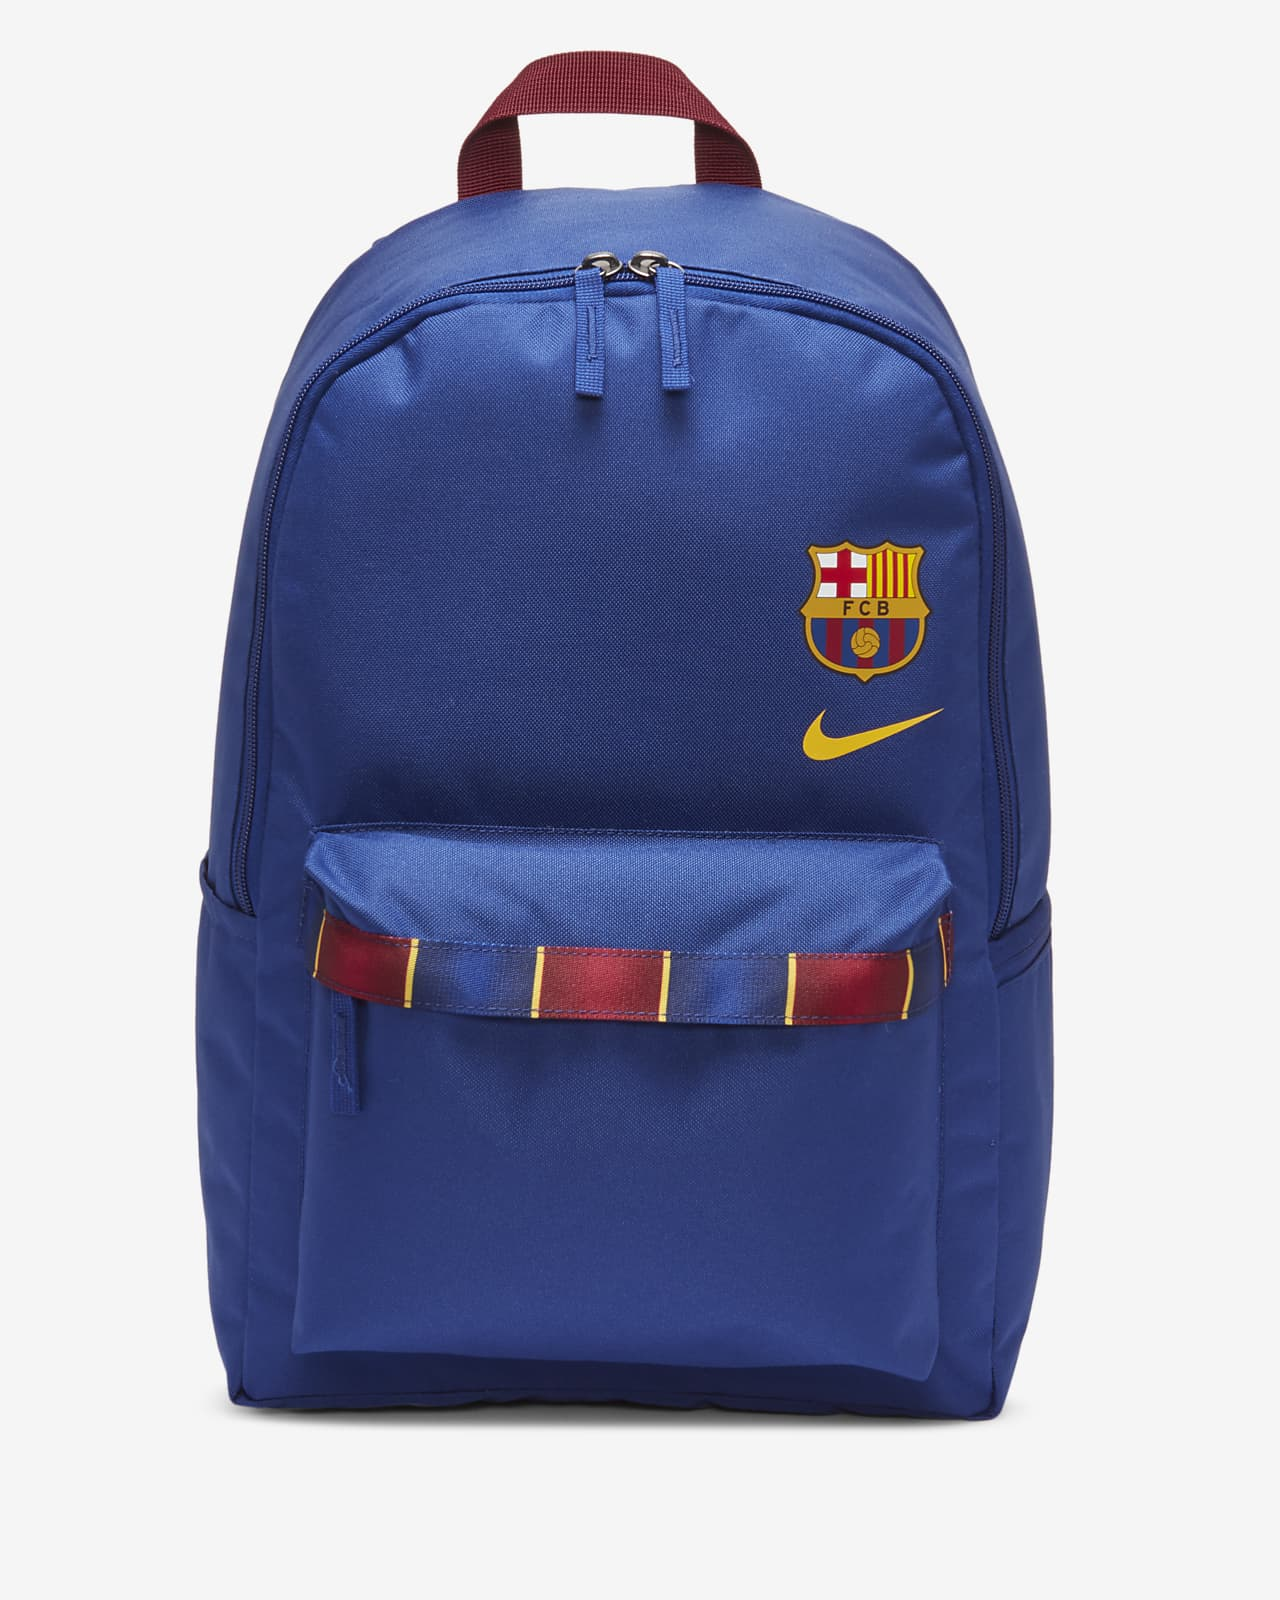 FC Barcelona Stadium Soccer Backpack